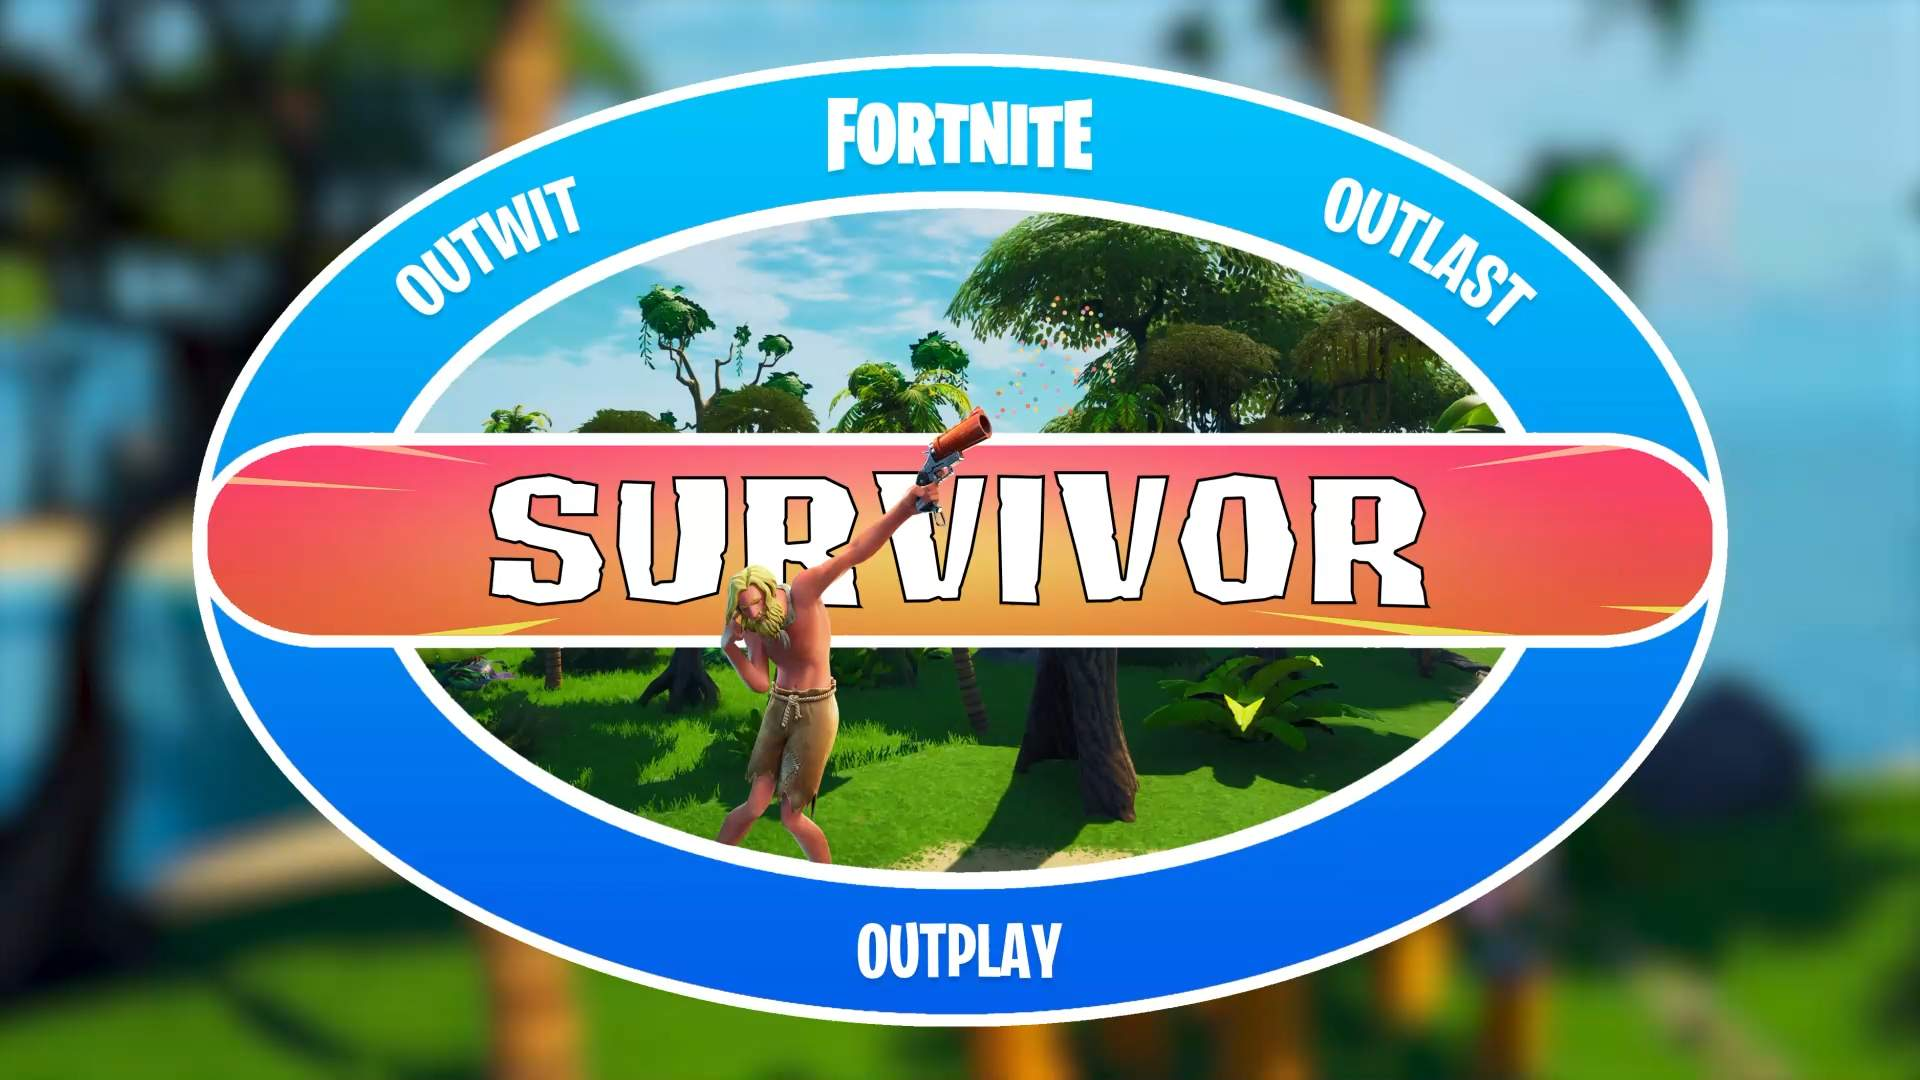 FORTNITE: SURVIVOR